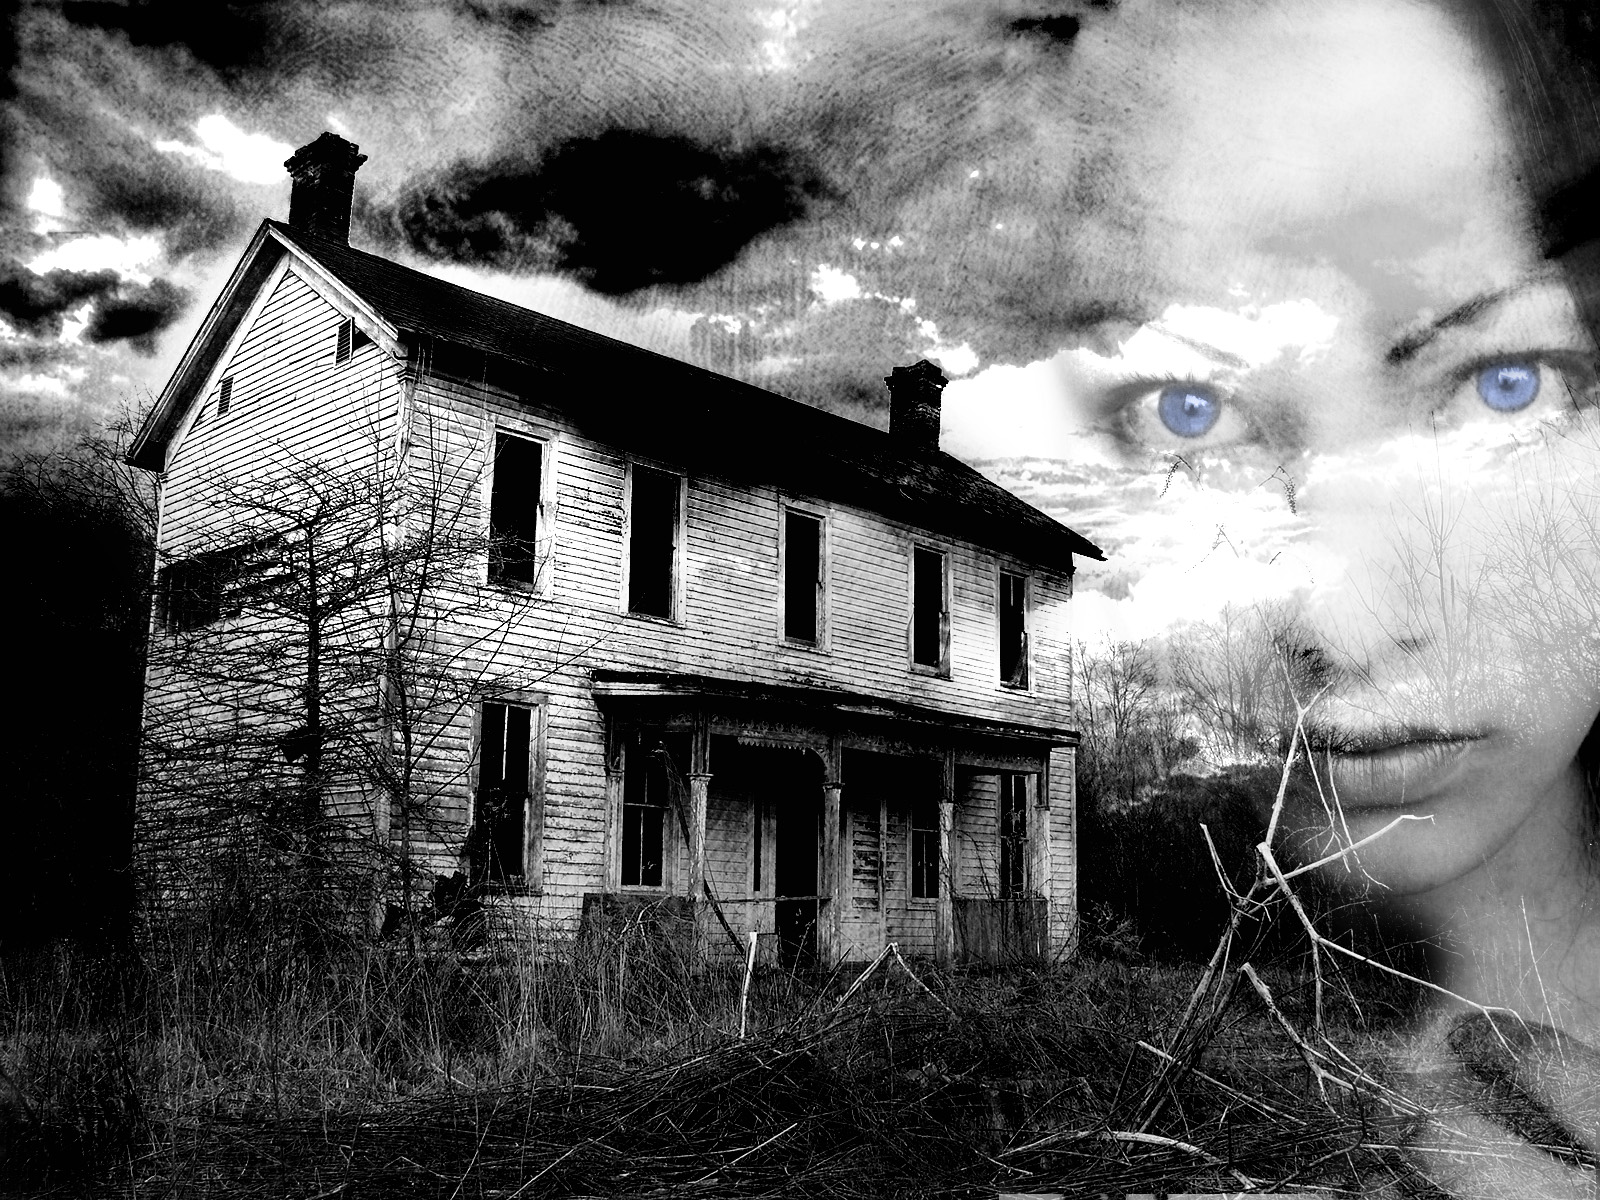 http://orig07.deviantart.net/c3cf/f/2007/320/2/5/ghost_house_2_by_arxetypo.jpg